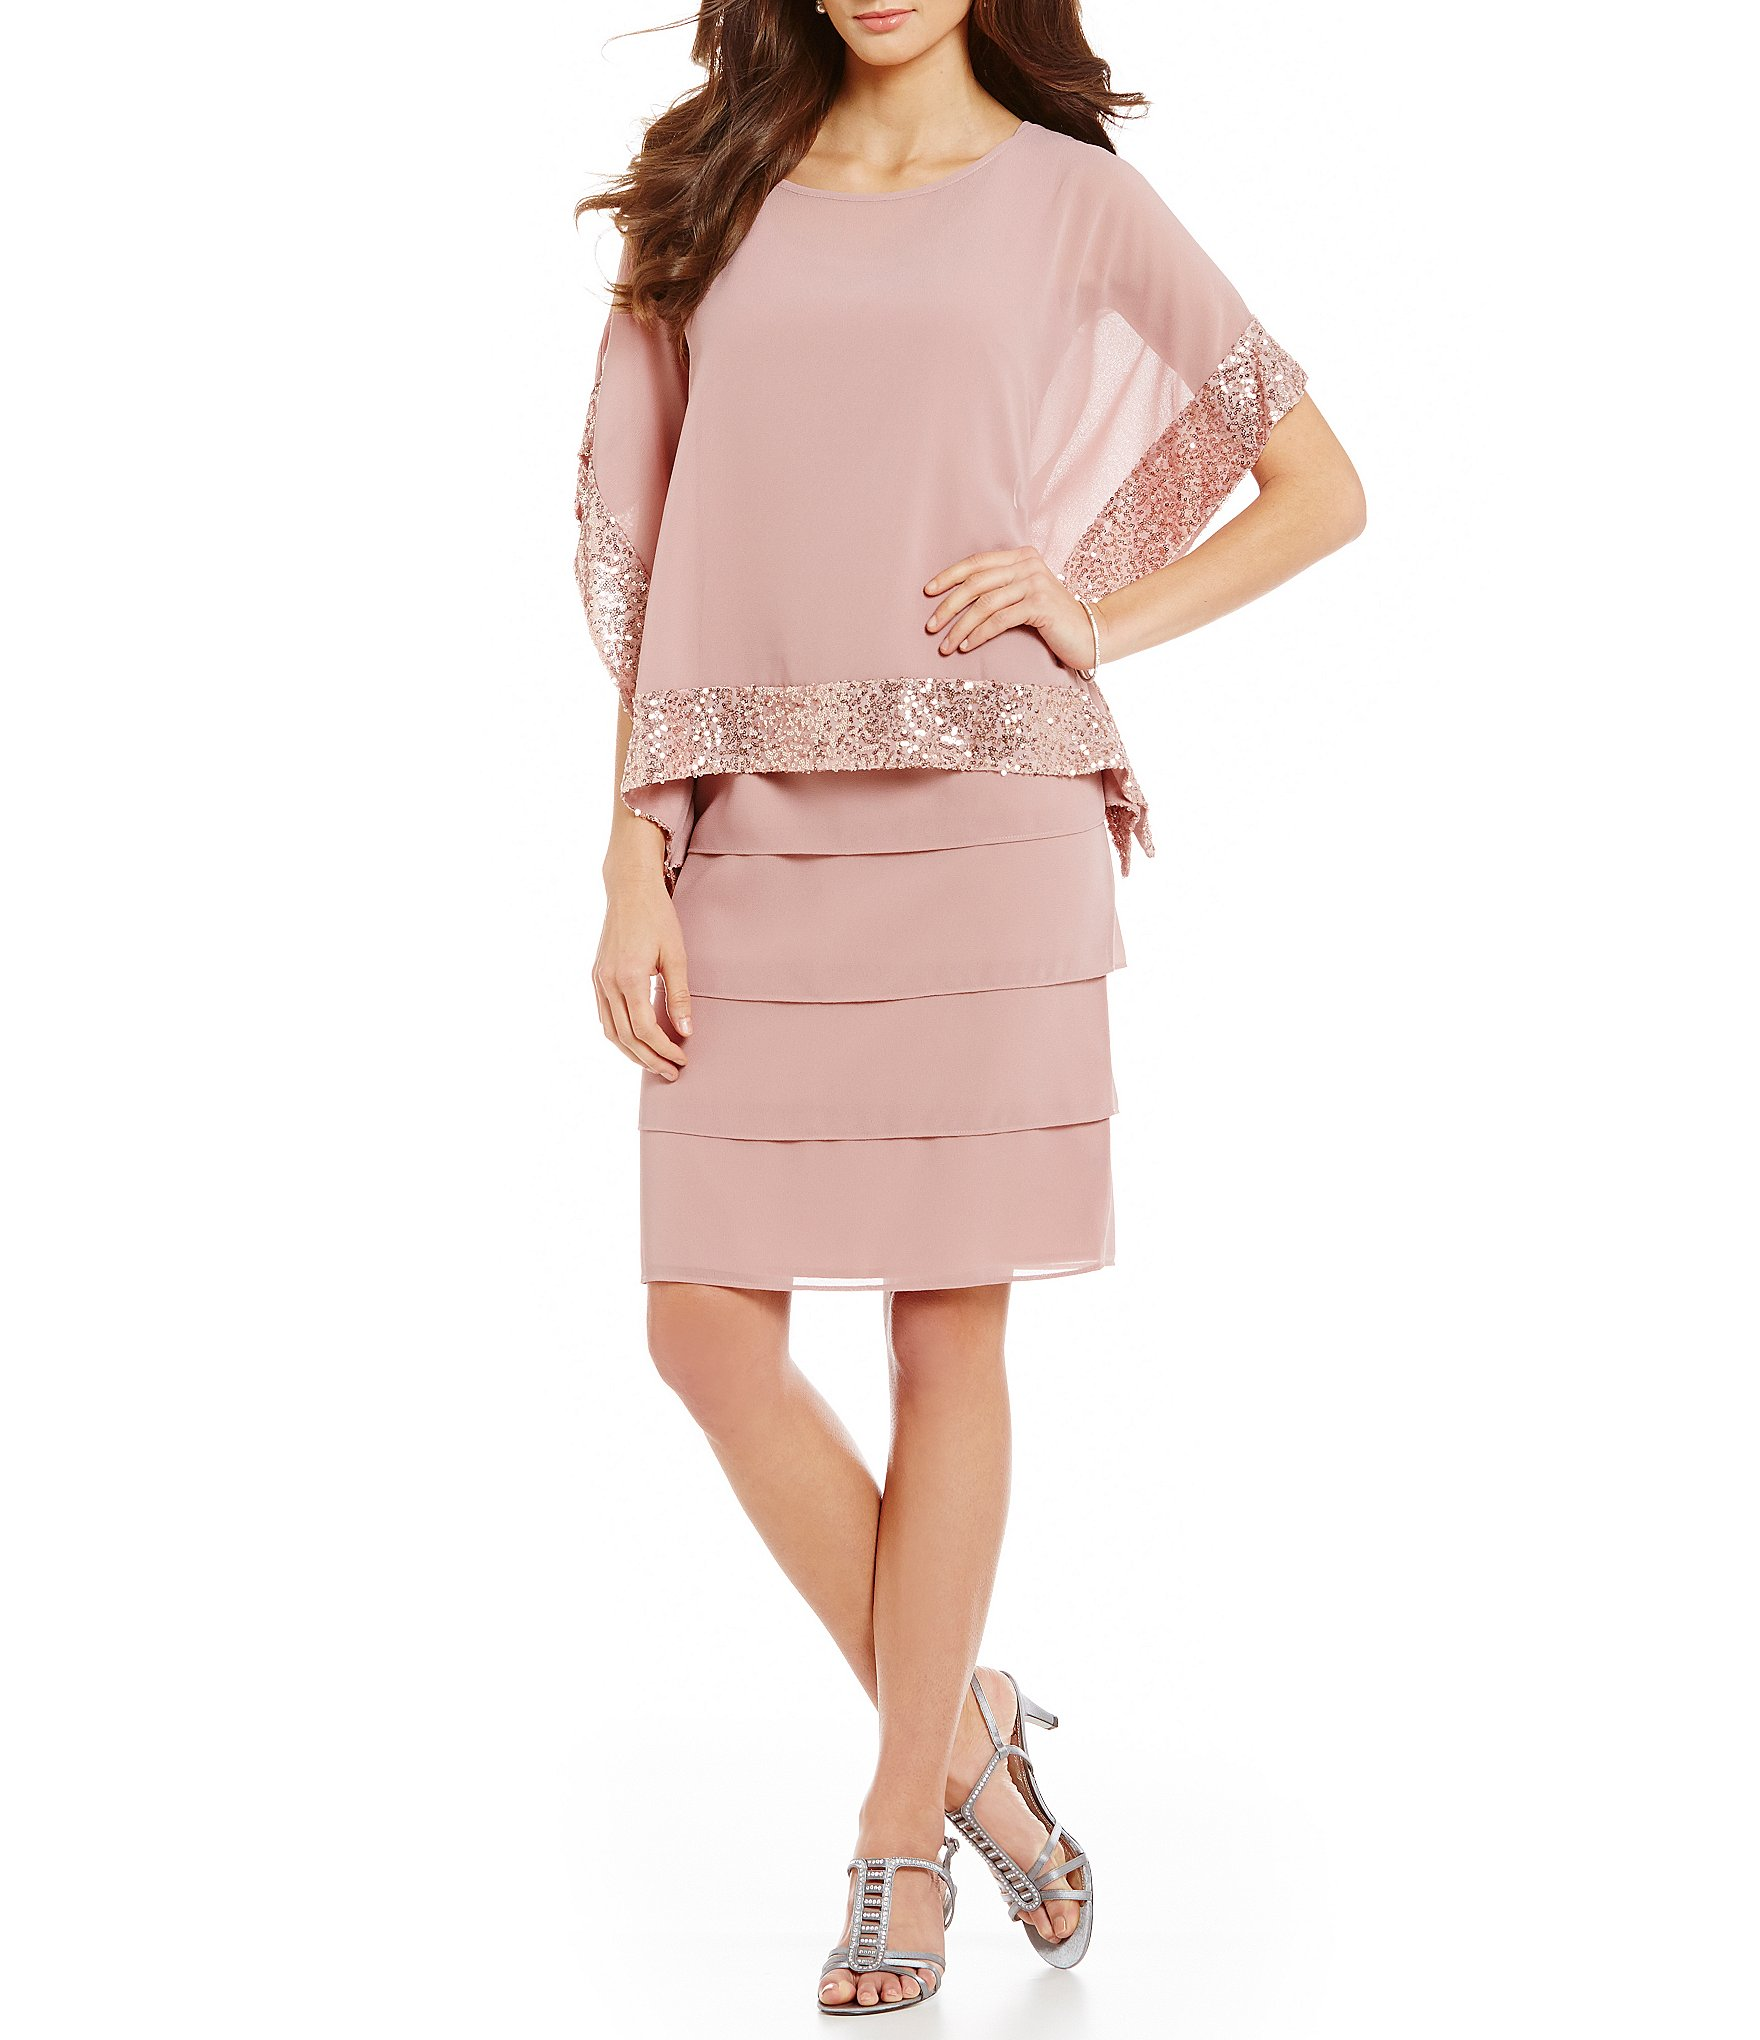 Explore Today's Best Results For Dillards Dresses We've made Exploring for deals easy! Simply search and compare dillards dresses across all major providers online and select the best dillards dresses deals available near you.